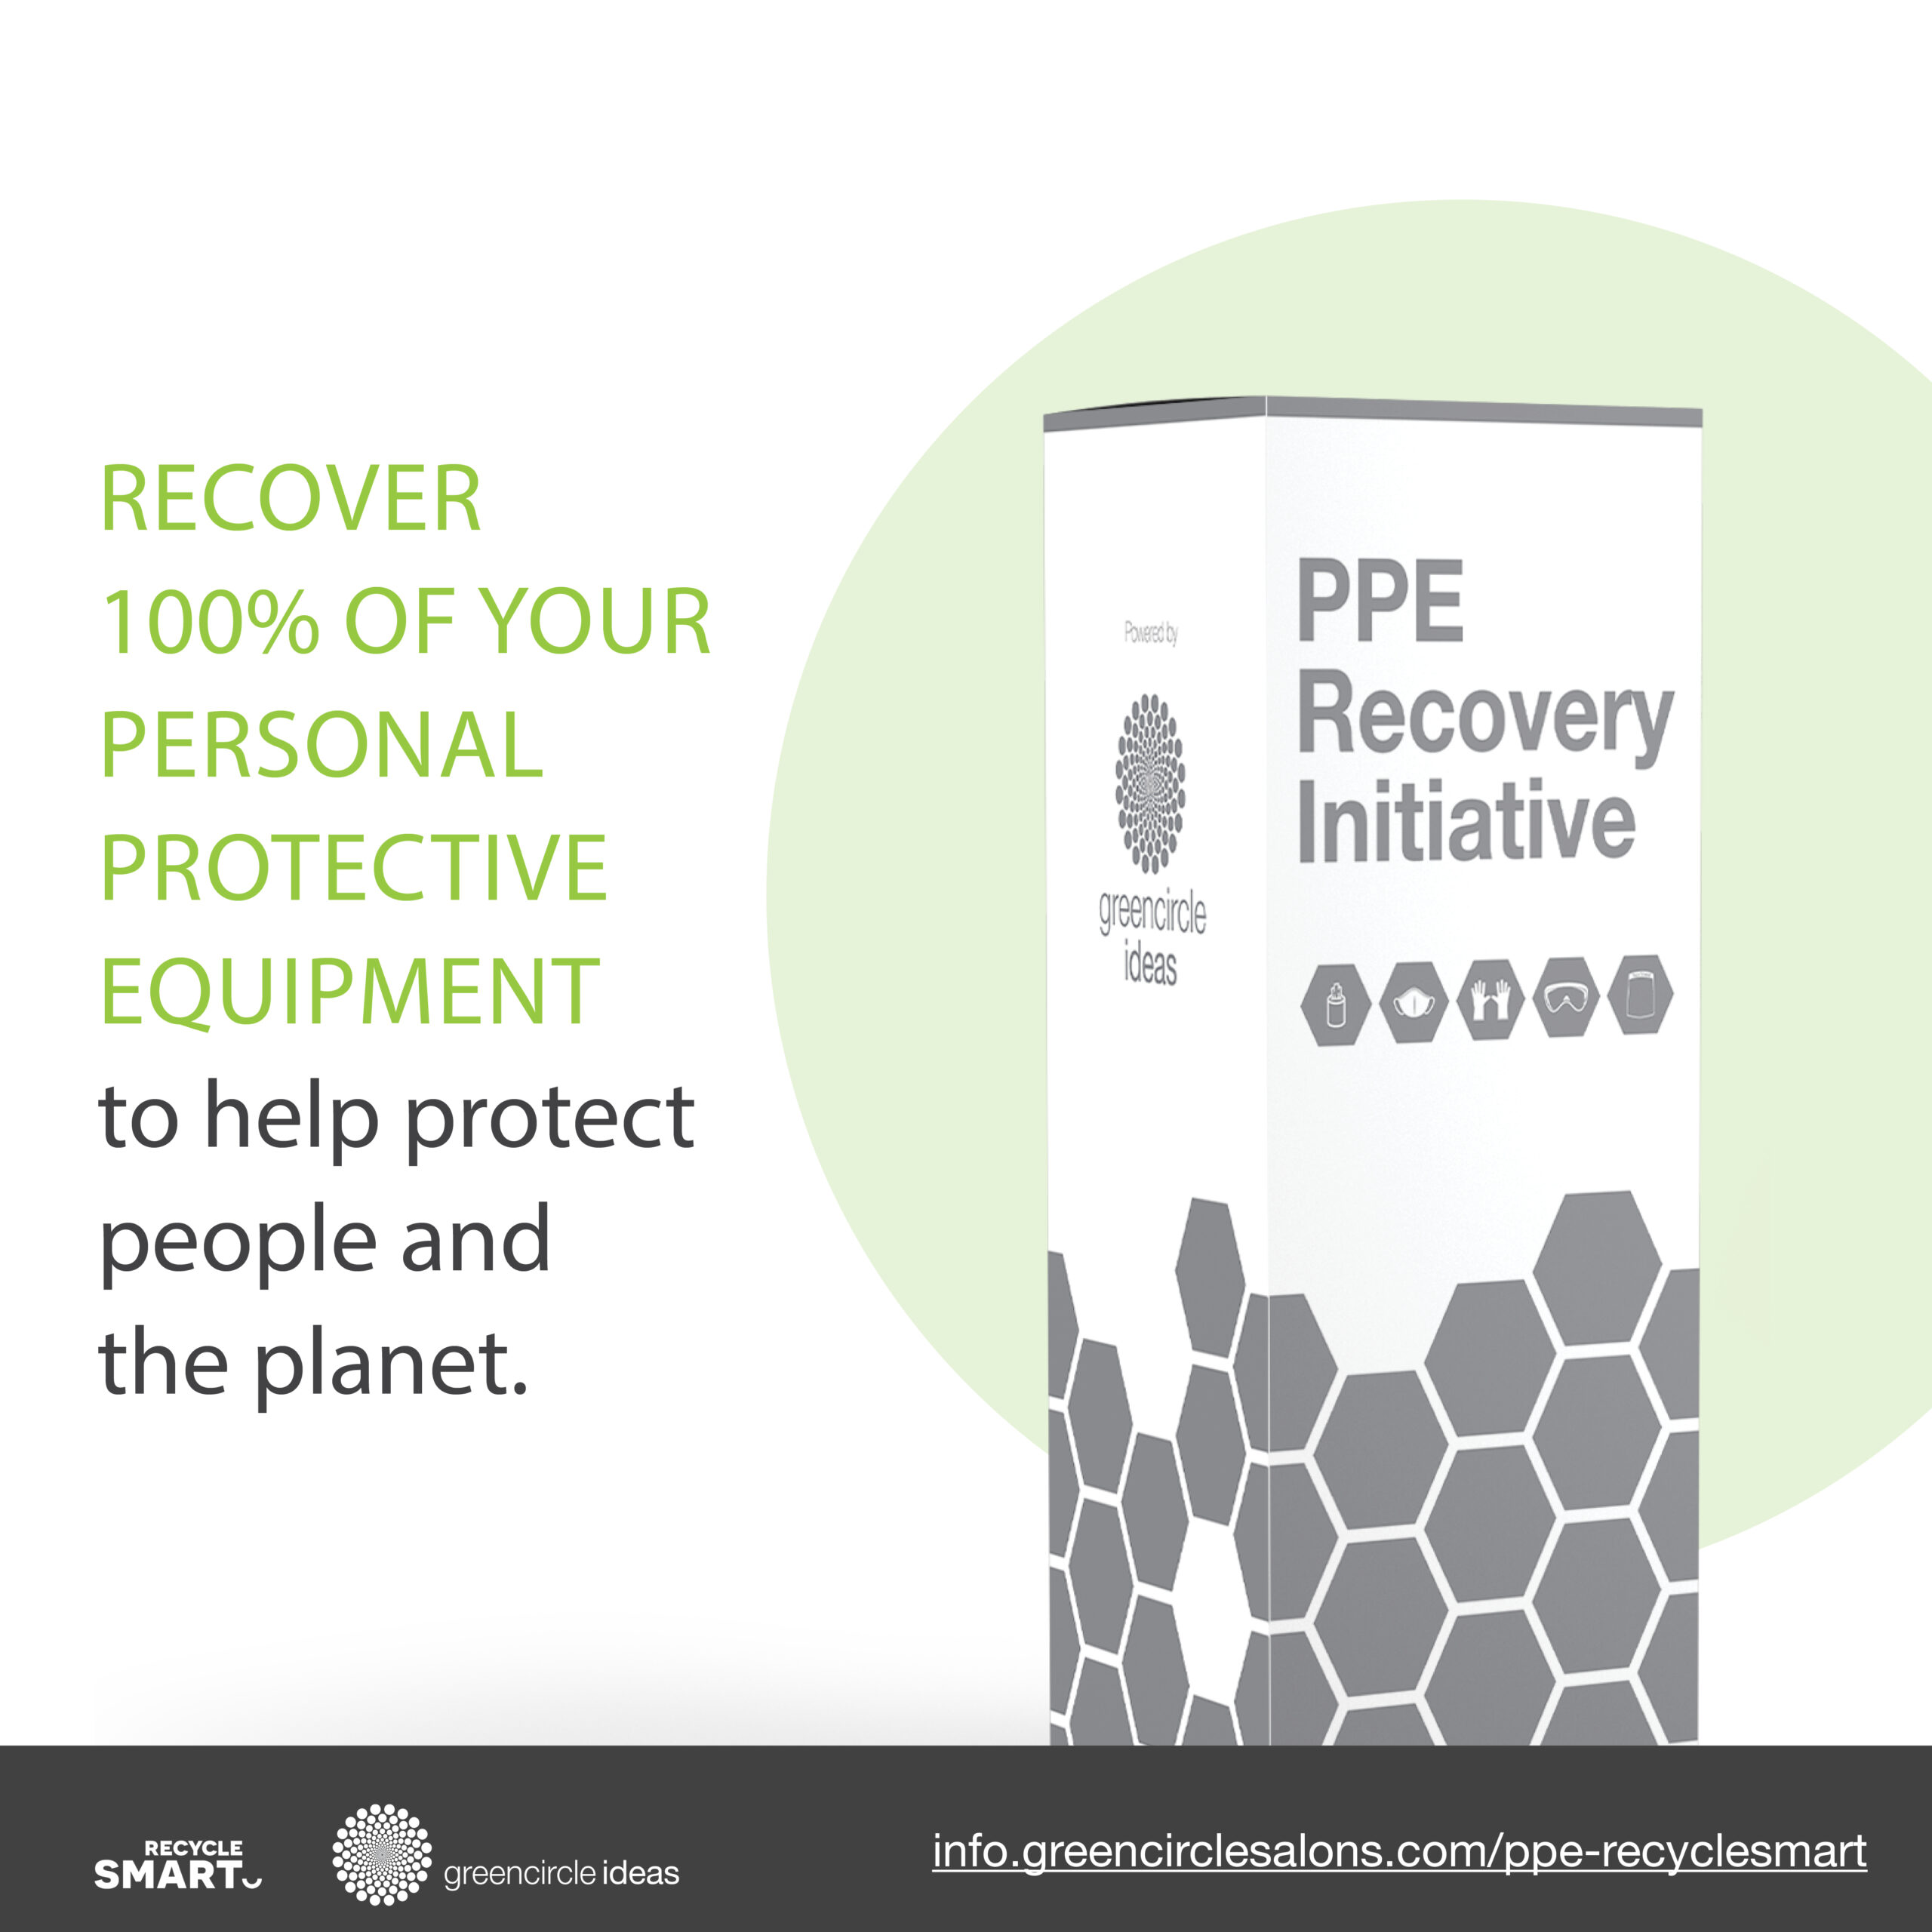 RecycleSmart and Green Circle Partner to bring you the PPE Recovery Initiative